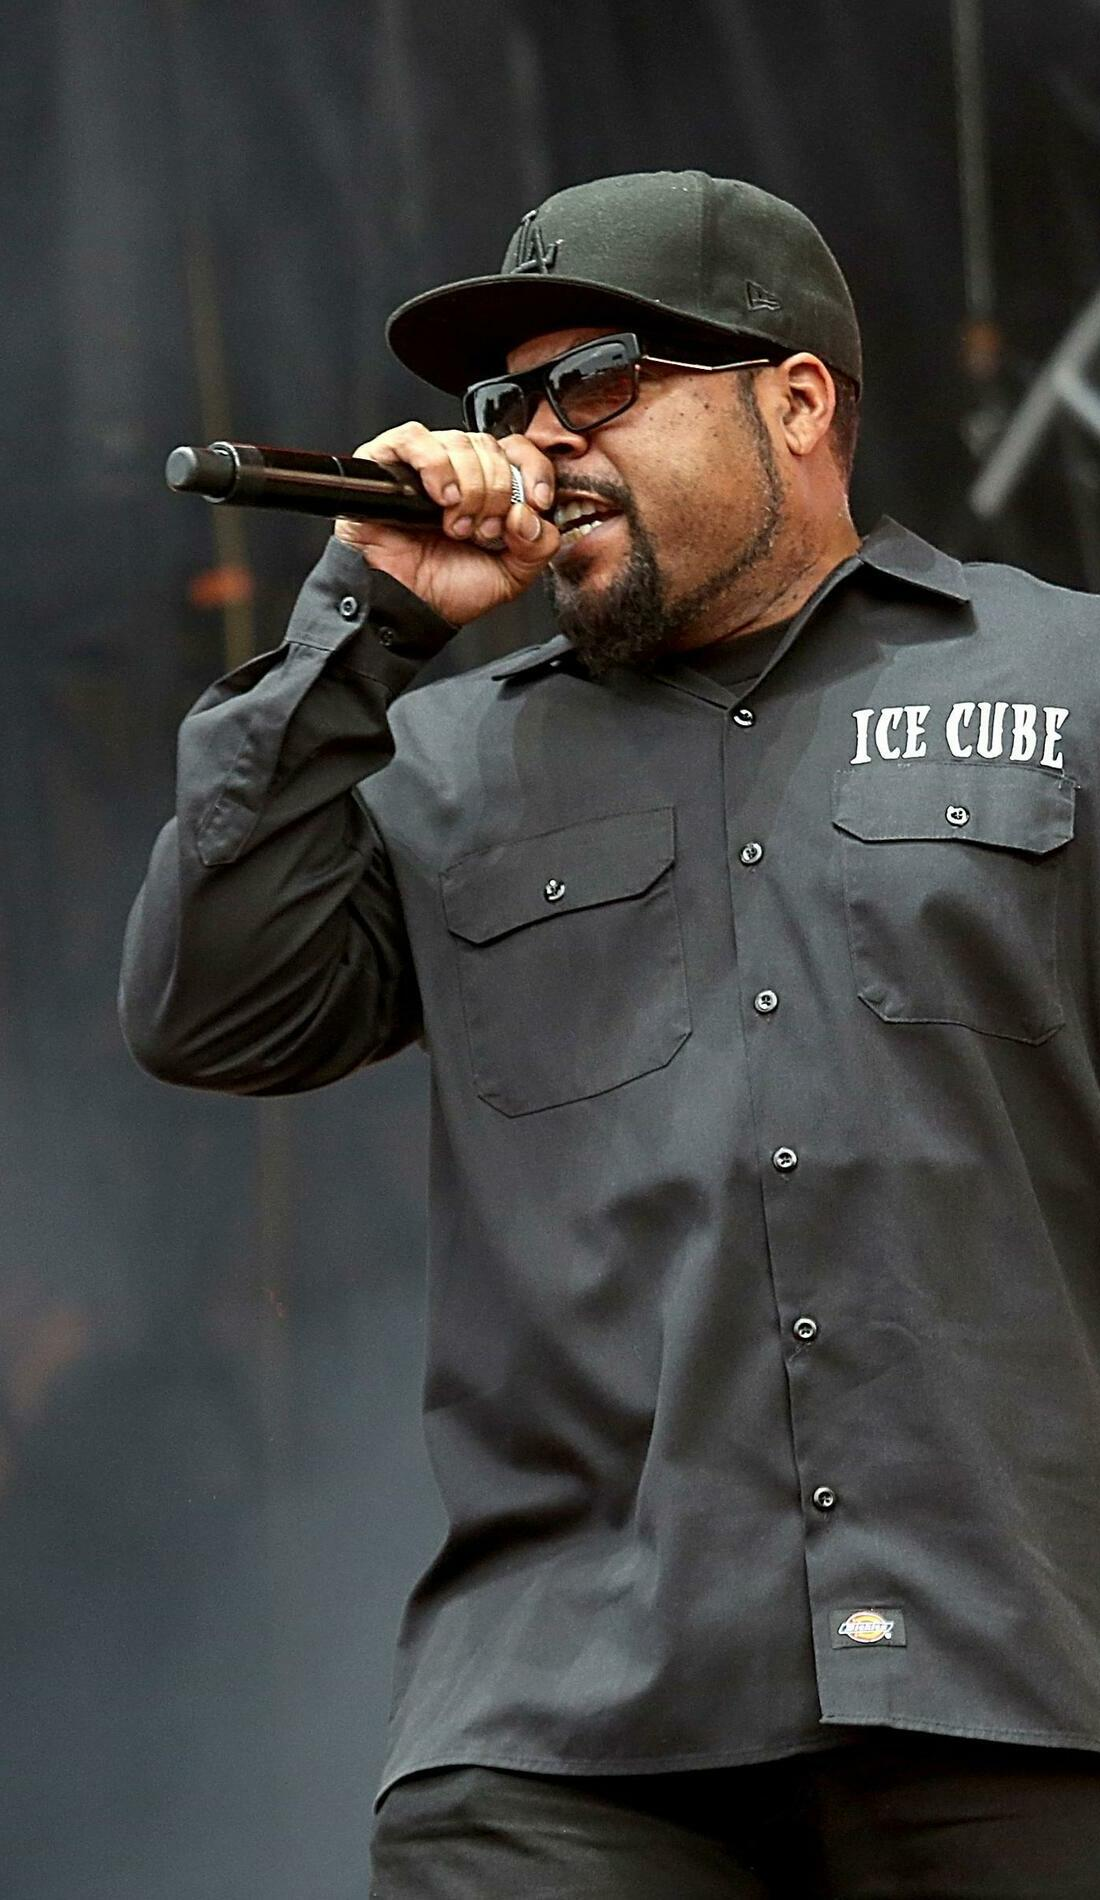 A Ice Cube live event